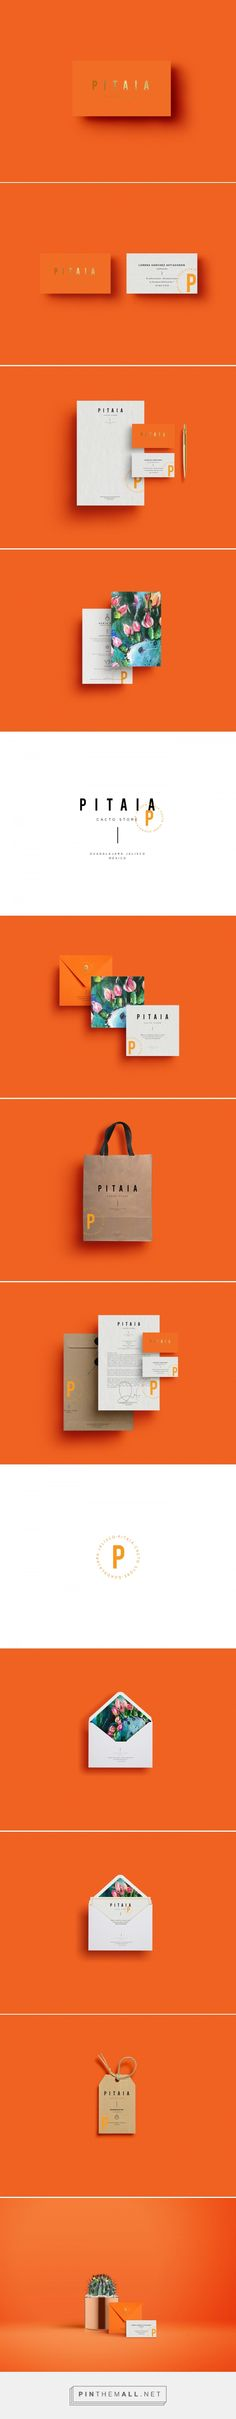 PITAIA Cacto Store Branding by Malarte Studio | Fivestar Branding Agency – Design and Branding Agency & Curated Inspiration Gallery  #design #designideas #designinspiration #branding #identity #identitydesign